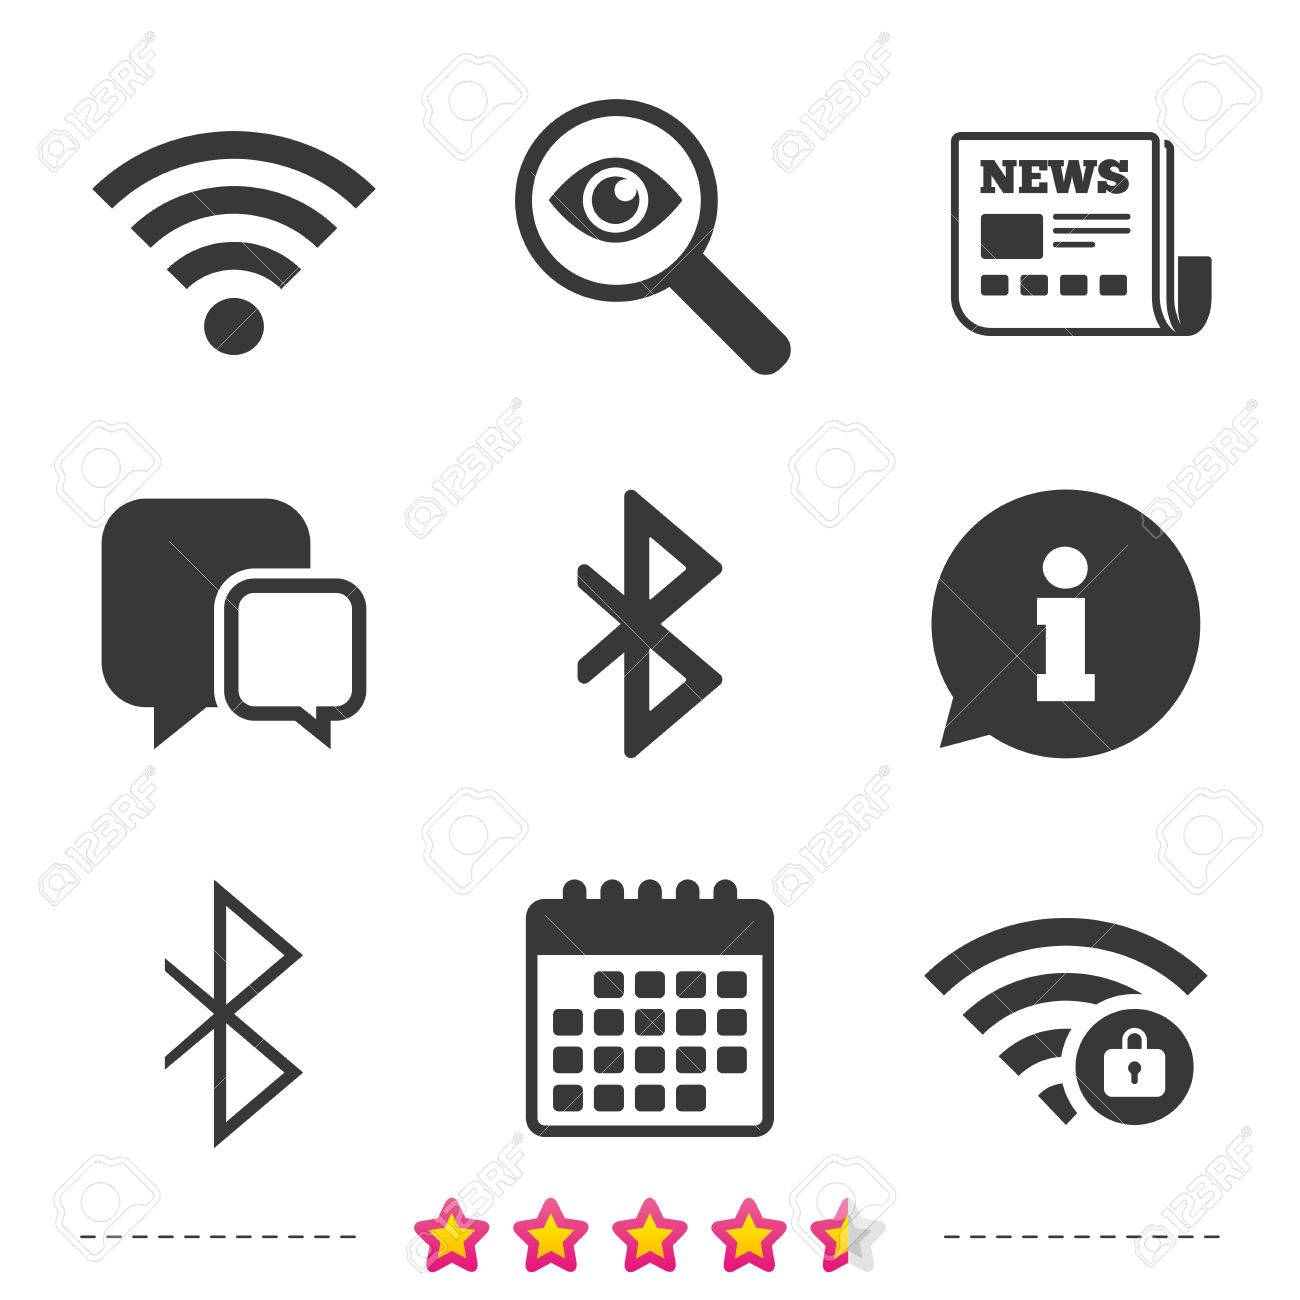 Bluetooth Symbol Stock Photos Royalty Free Bluetooth Symbol Images